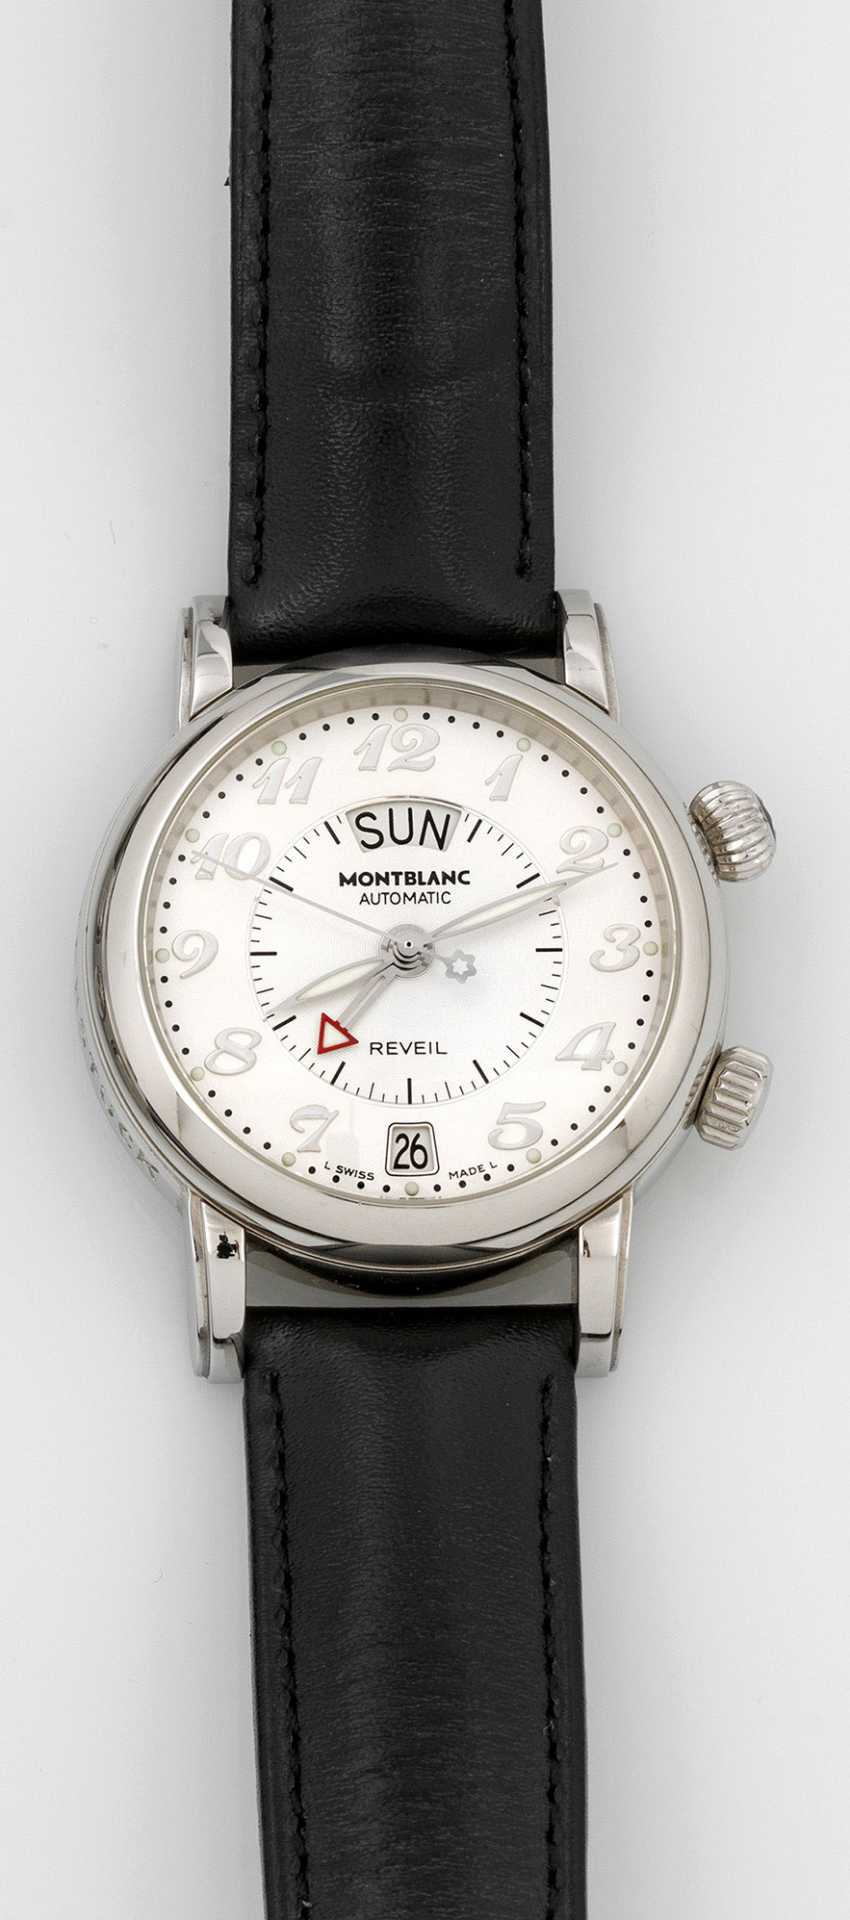 Men's watch from Montblanc, with alarm function - photo 1